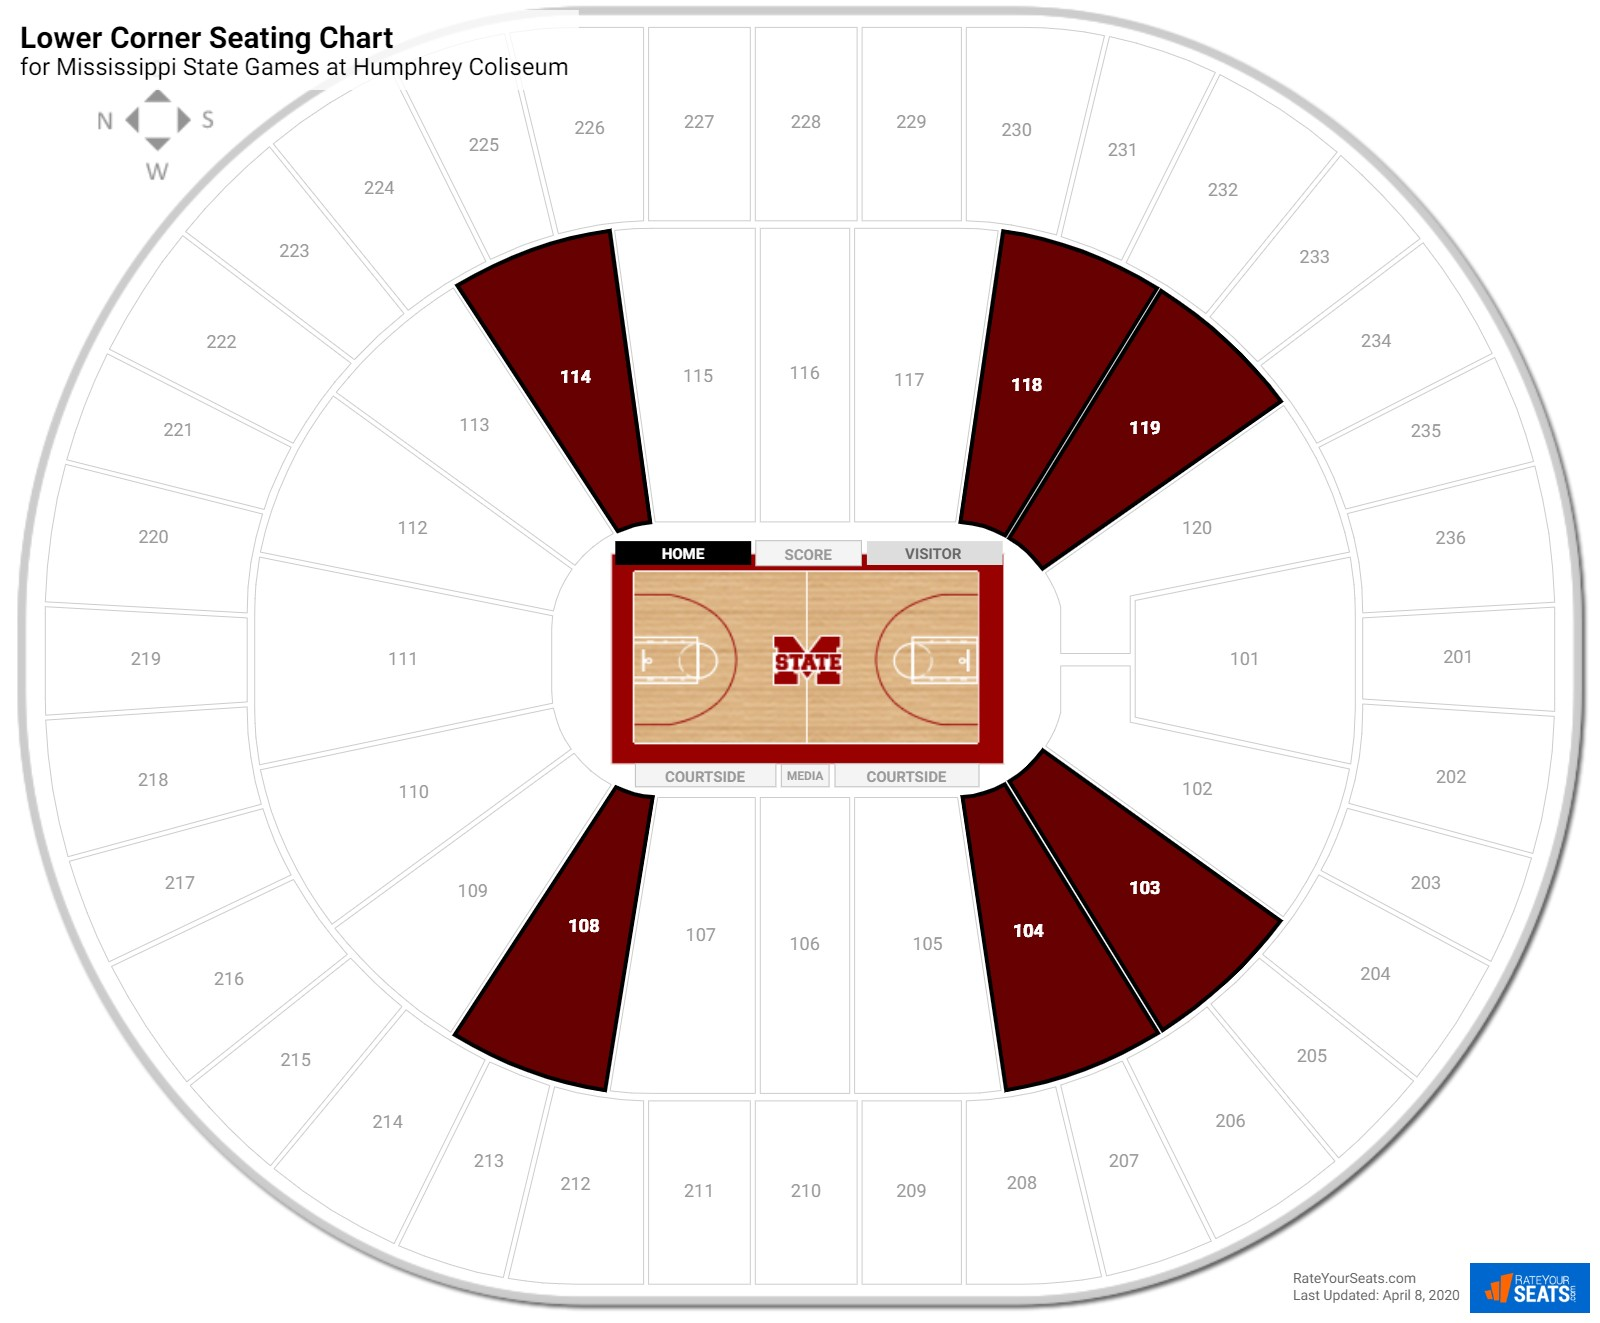 Humphrey Coliseum Lower Corner seating chart